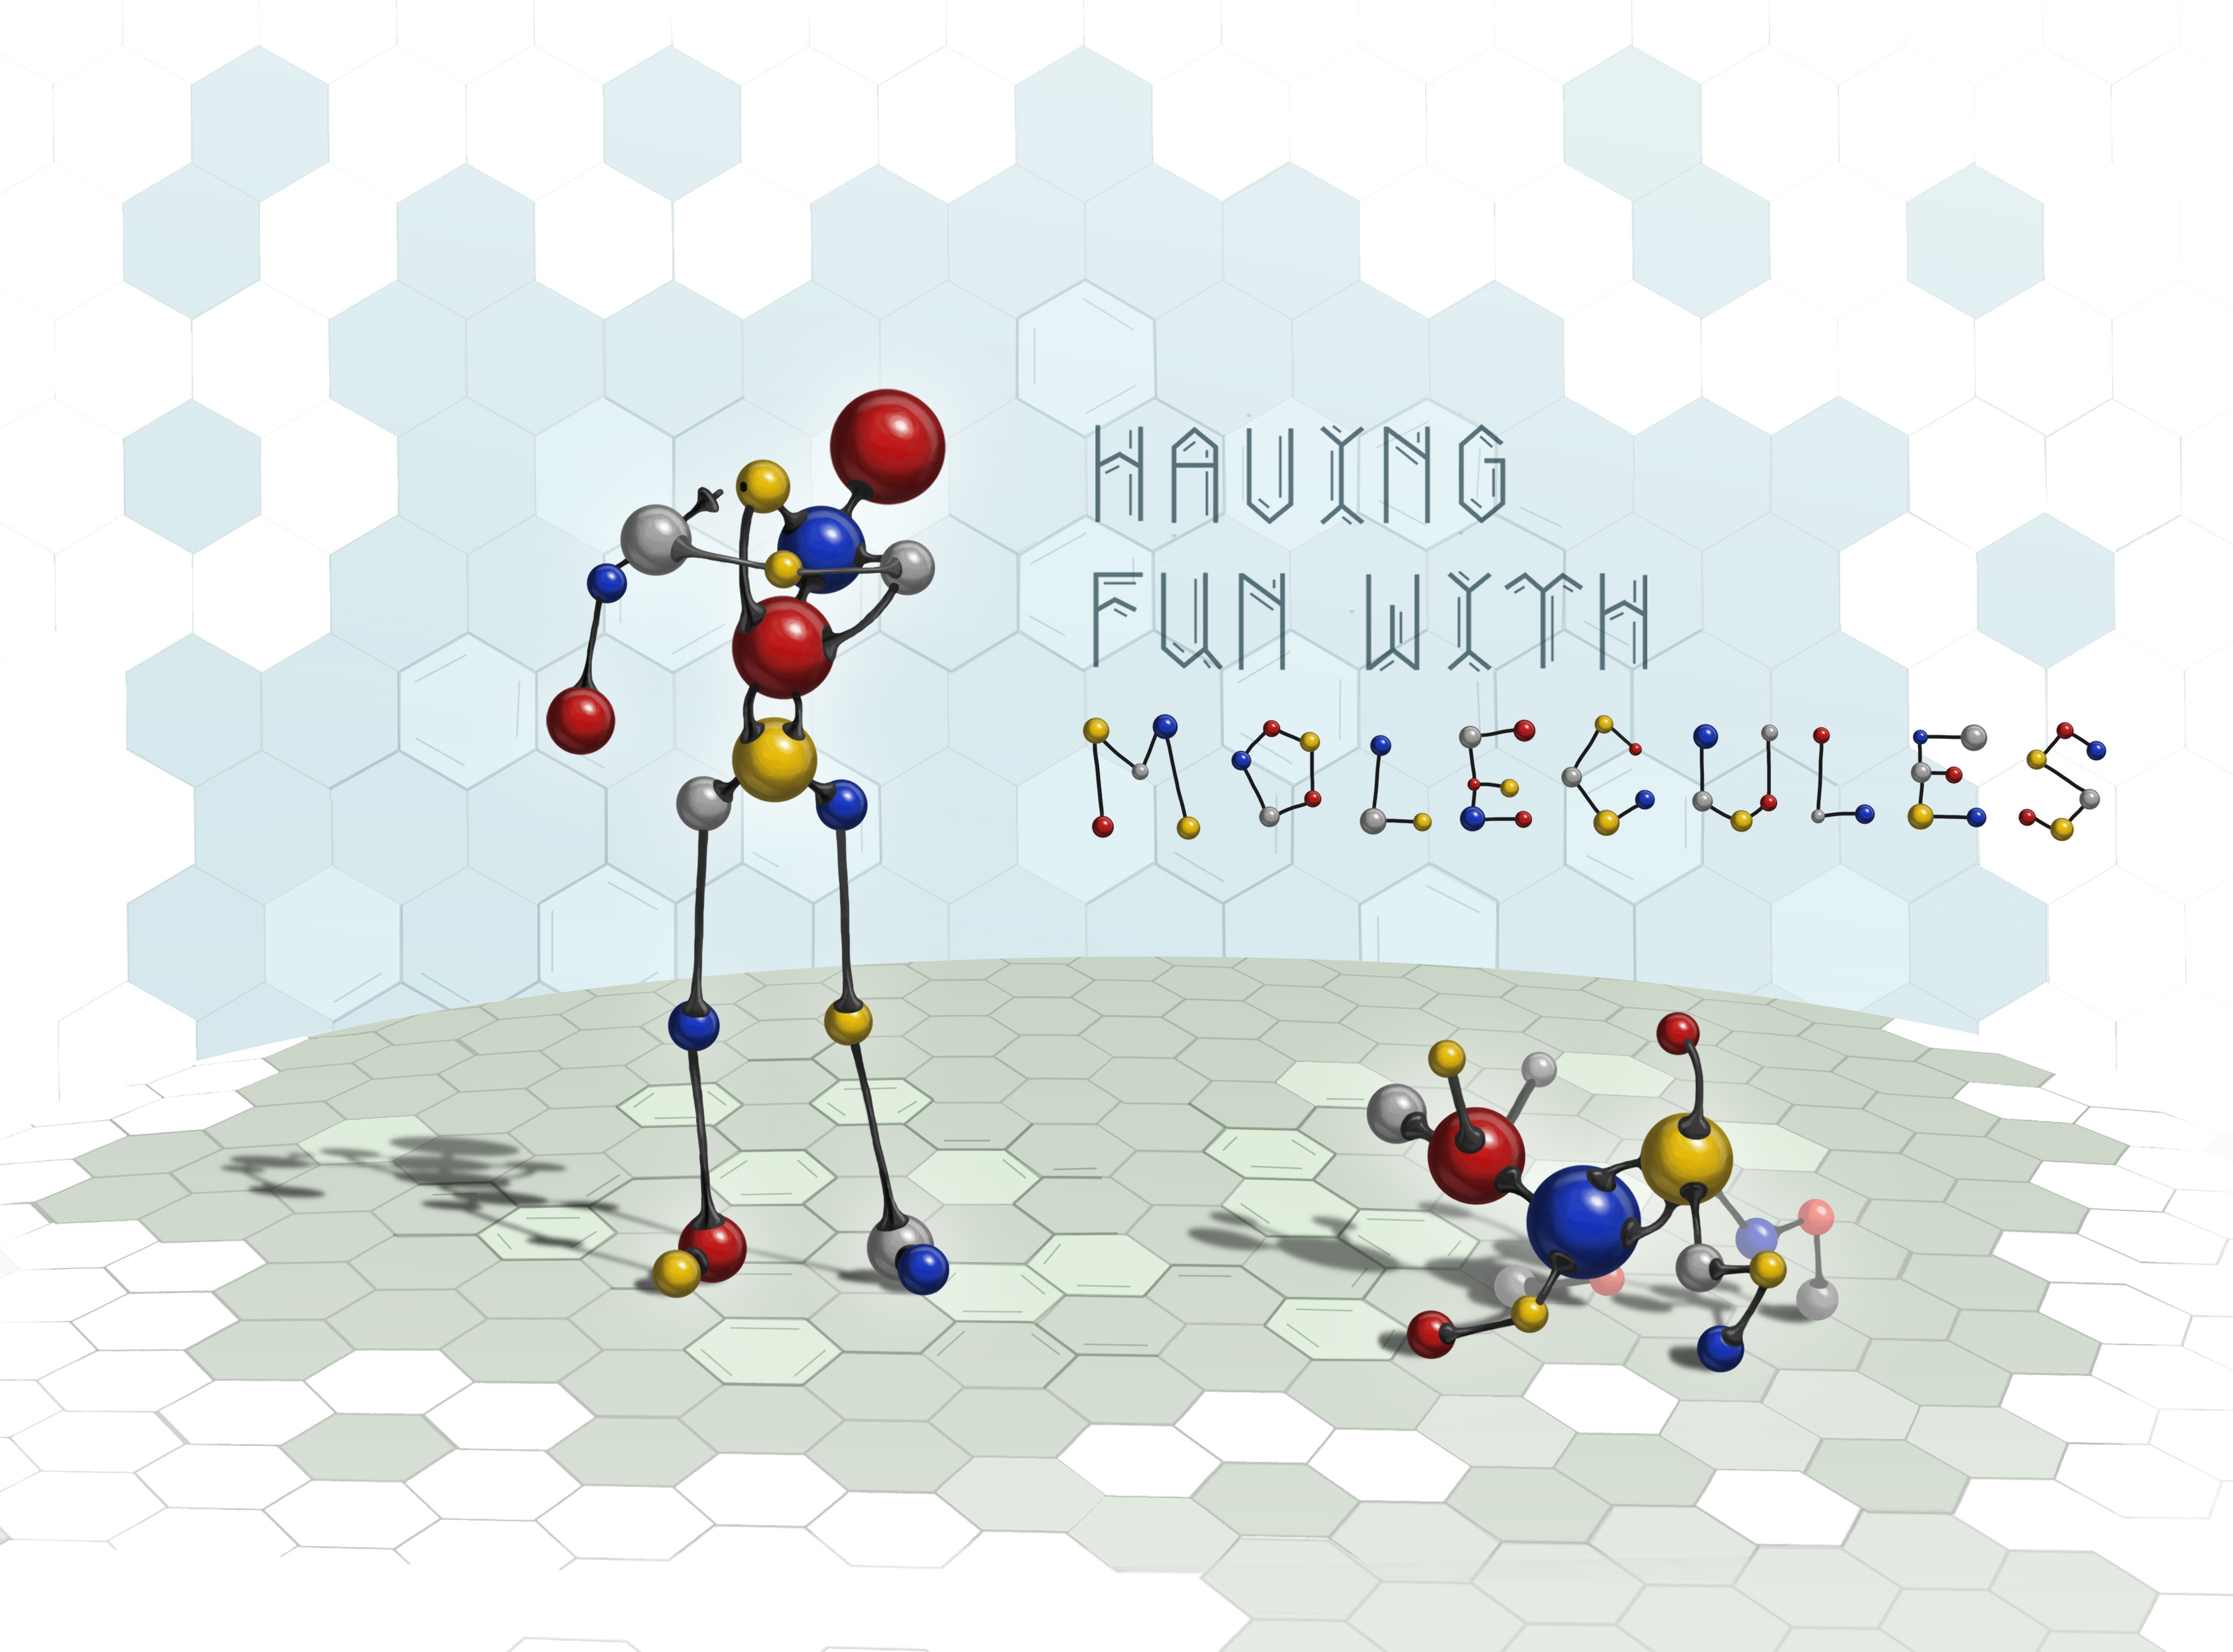 illustration of a stick figure of a man and a dog, representing molecules